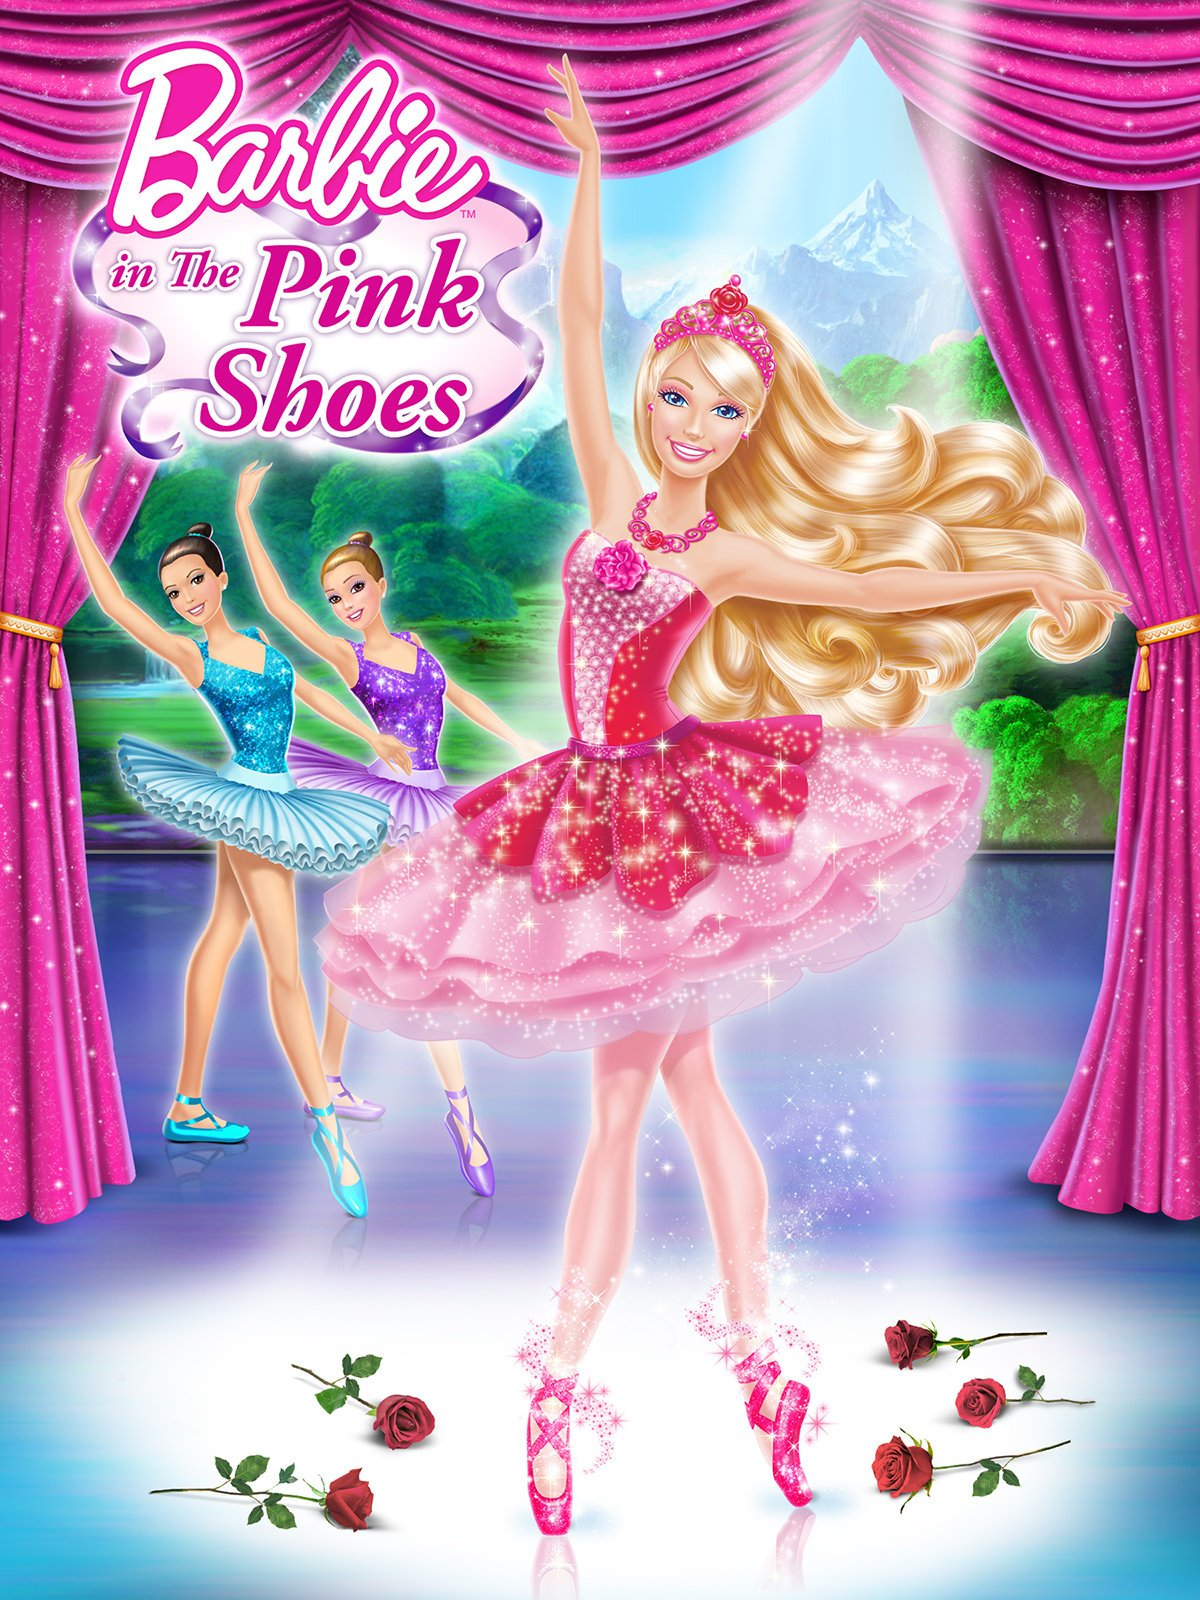 Uncategorized Barbie And The Pink Shoes amazon com barbie in the pink shoes kelly sheridan katie crown ali liebert tabitha st germain digital services llc